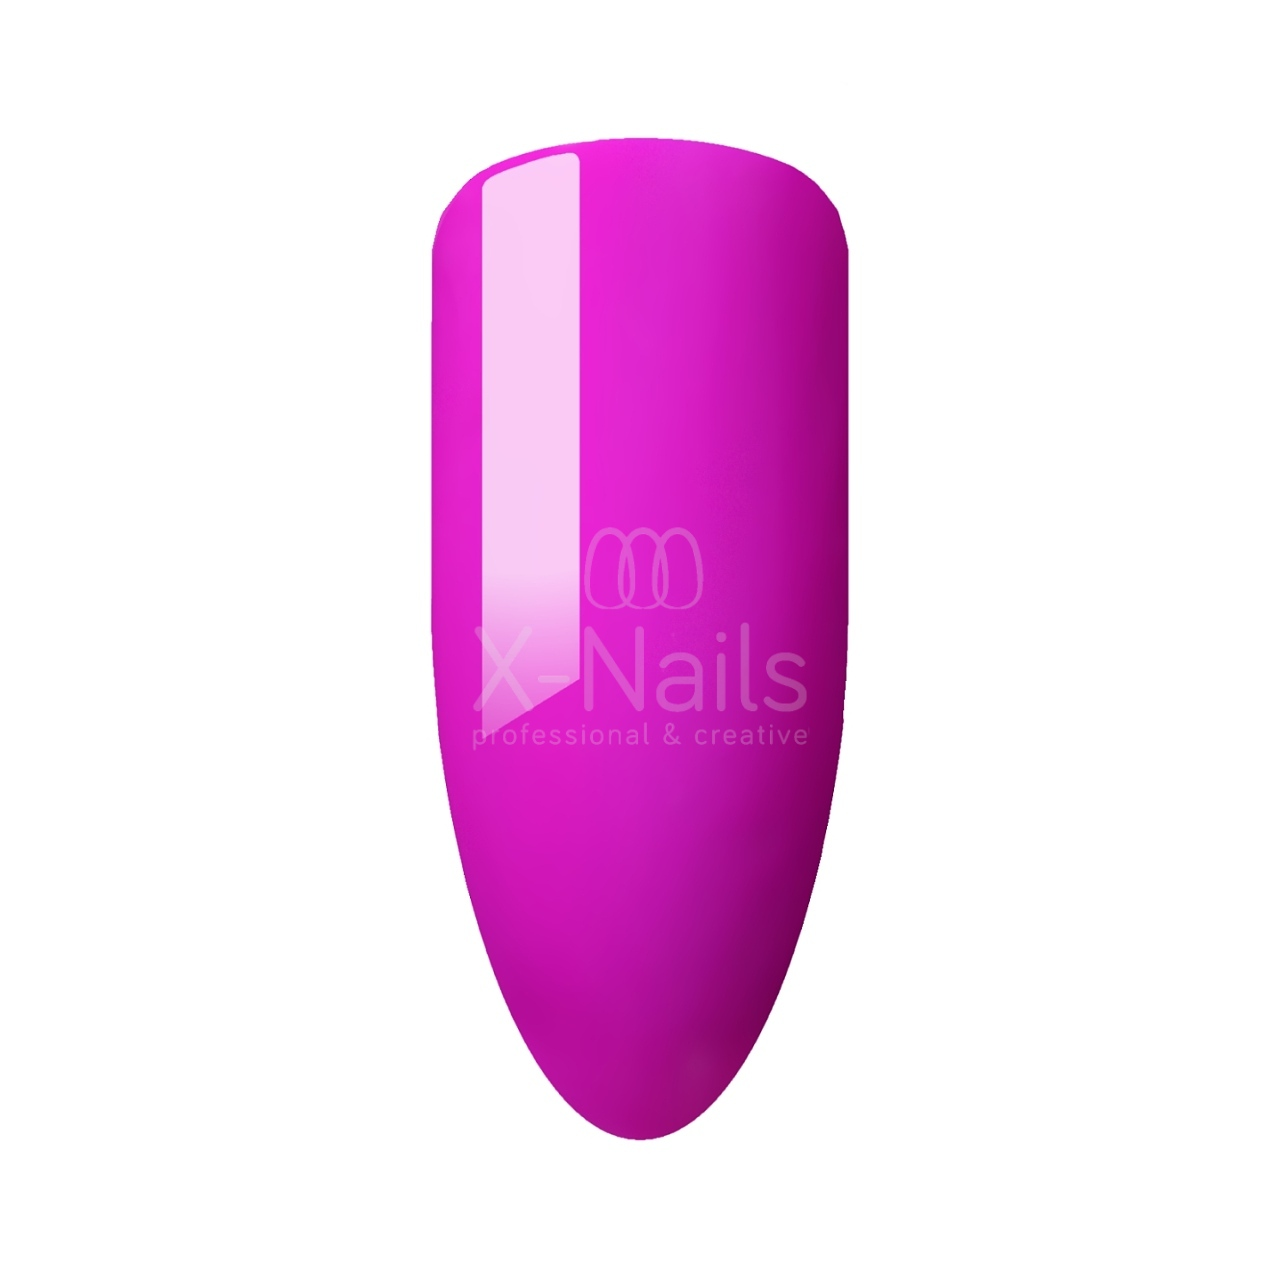 X-NAILS gel lak Amazing Line, 5 ml - MAGICAL VIOLET